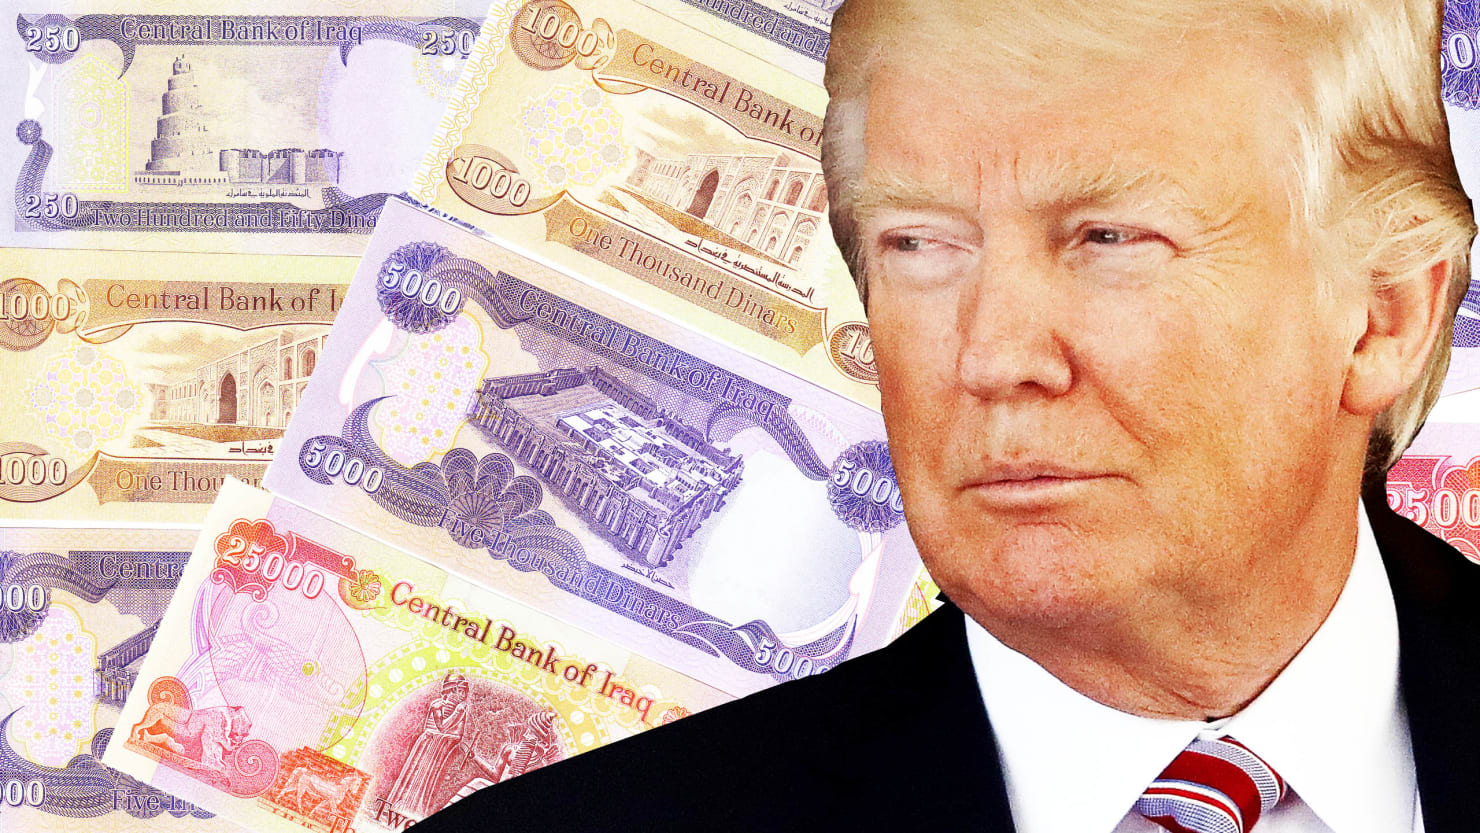 Trump Fans Sink Savings Into 'Iraqi Dinar' Scam 181119-sommer-iraqi-dinar-trump-tease_ehkldv